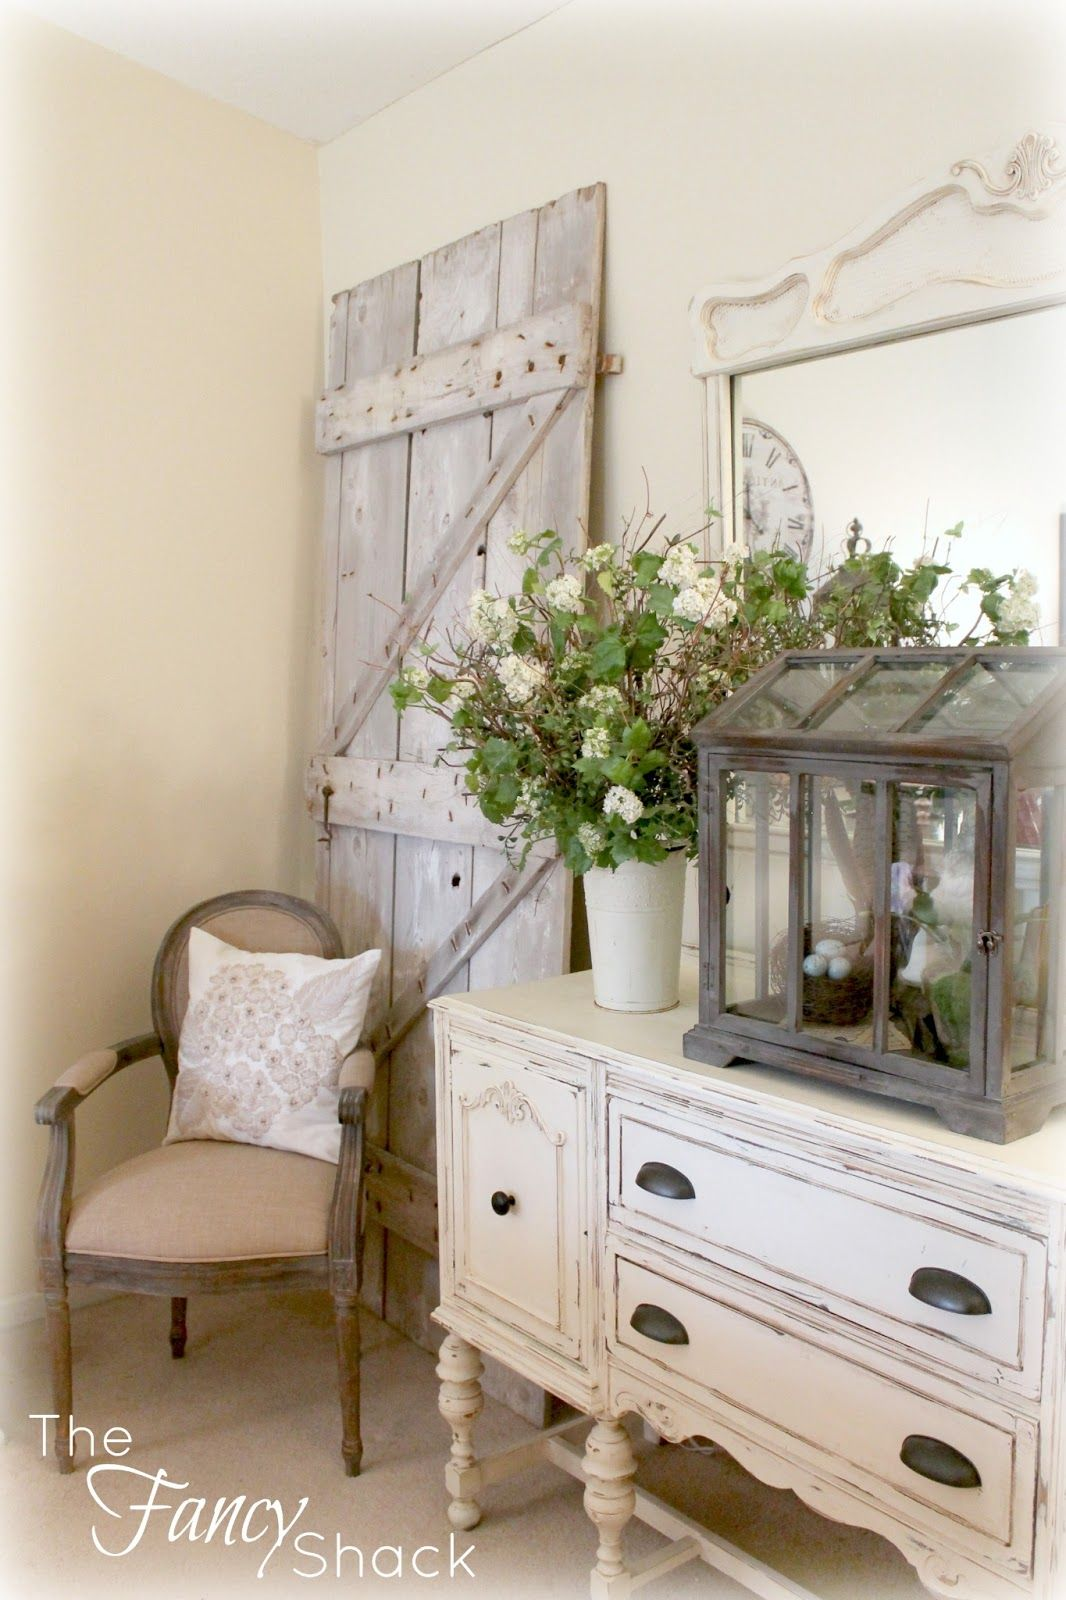 52 ways incorporate shabby chic style into every room in your home - Chic country house architecture with adorable interior design ...